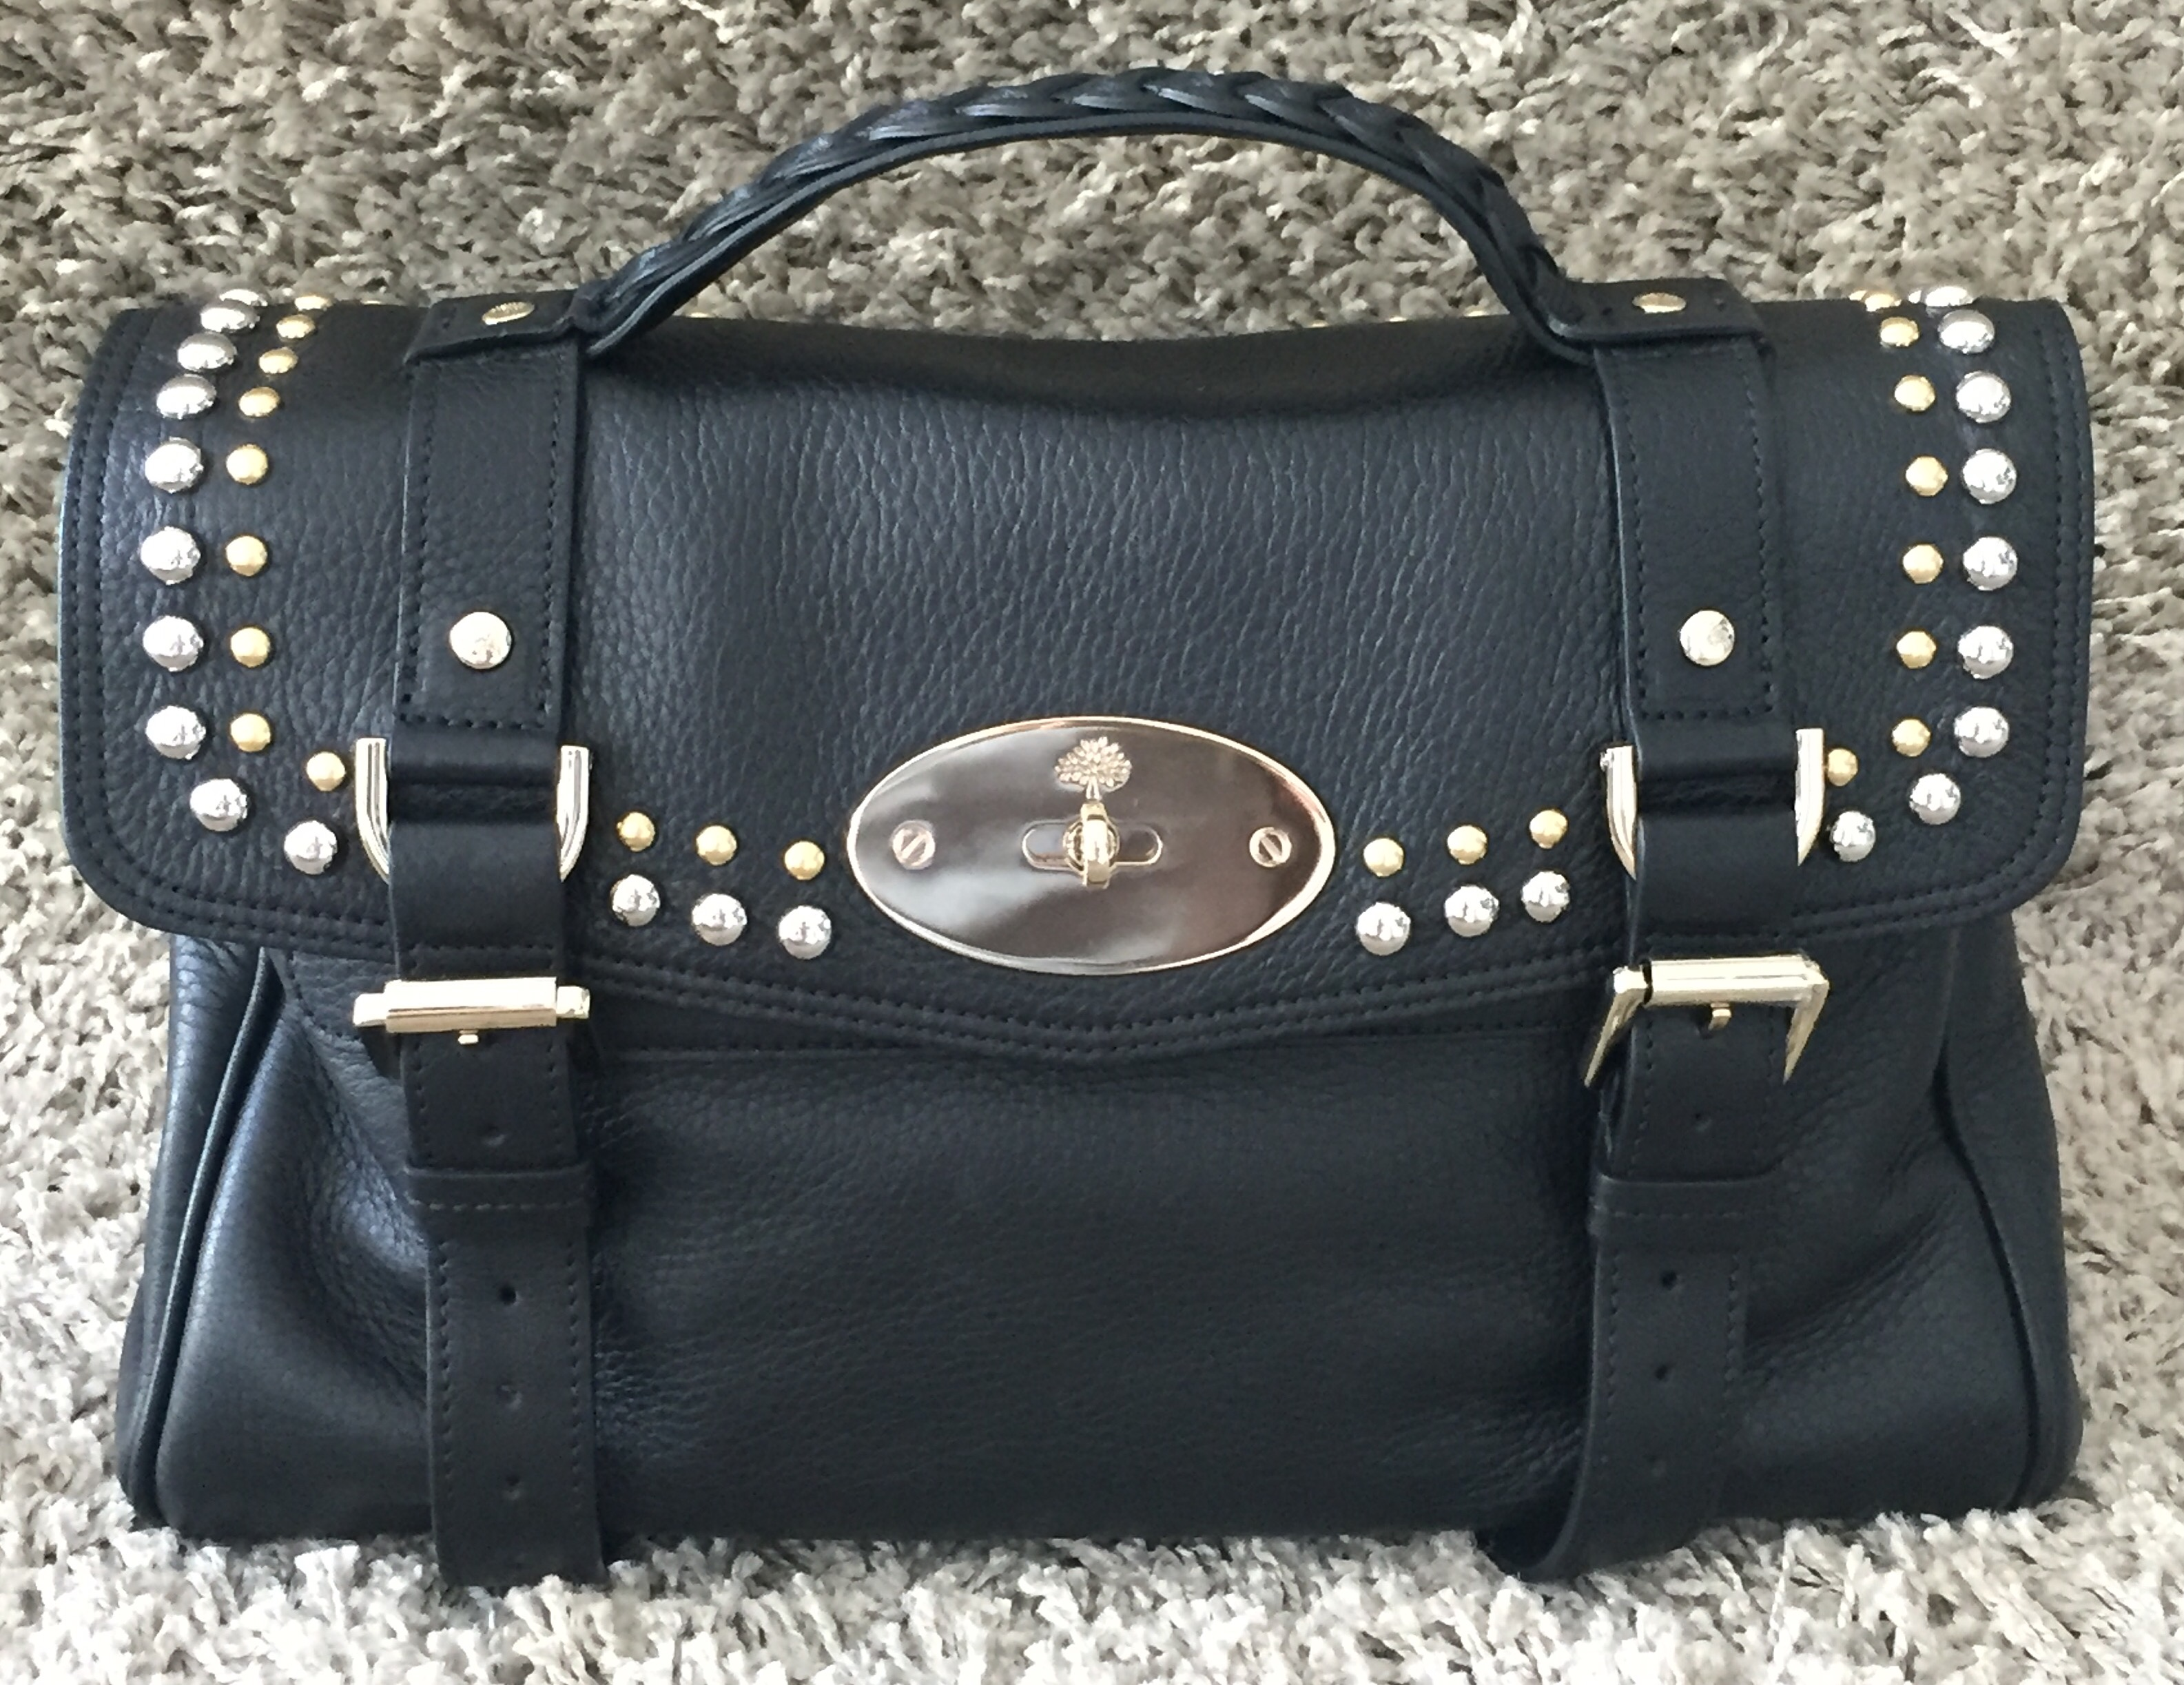 New Bag Alert… Introducing the Mulberry Alexa Soft Grain with Rivets ... 69303b2737